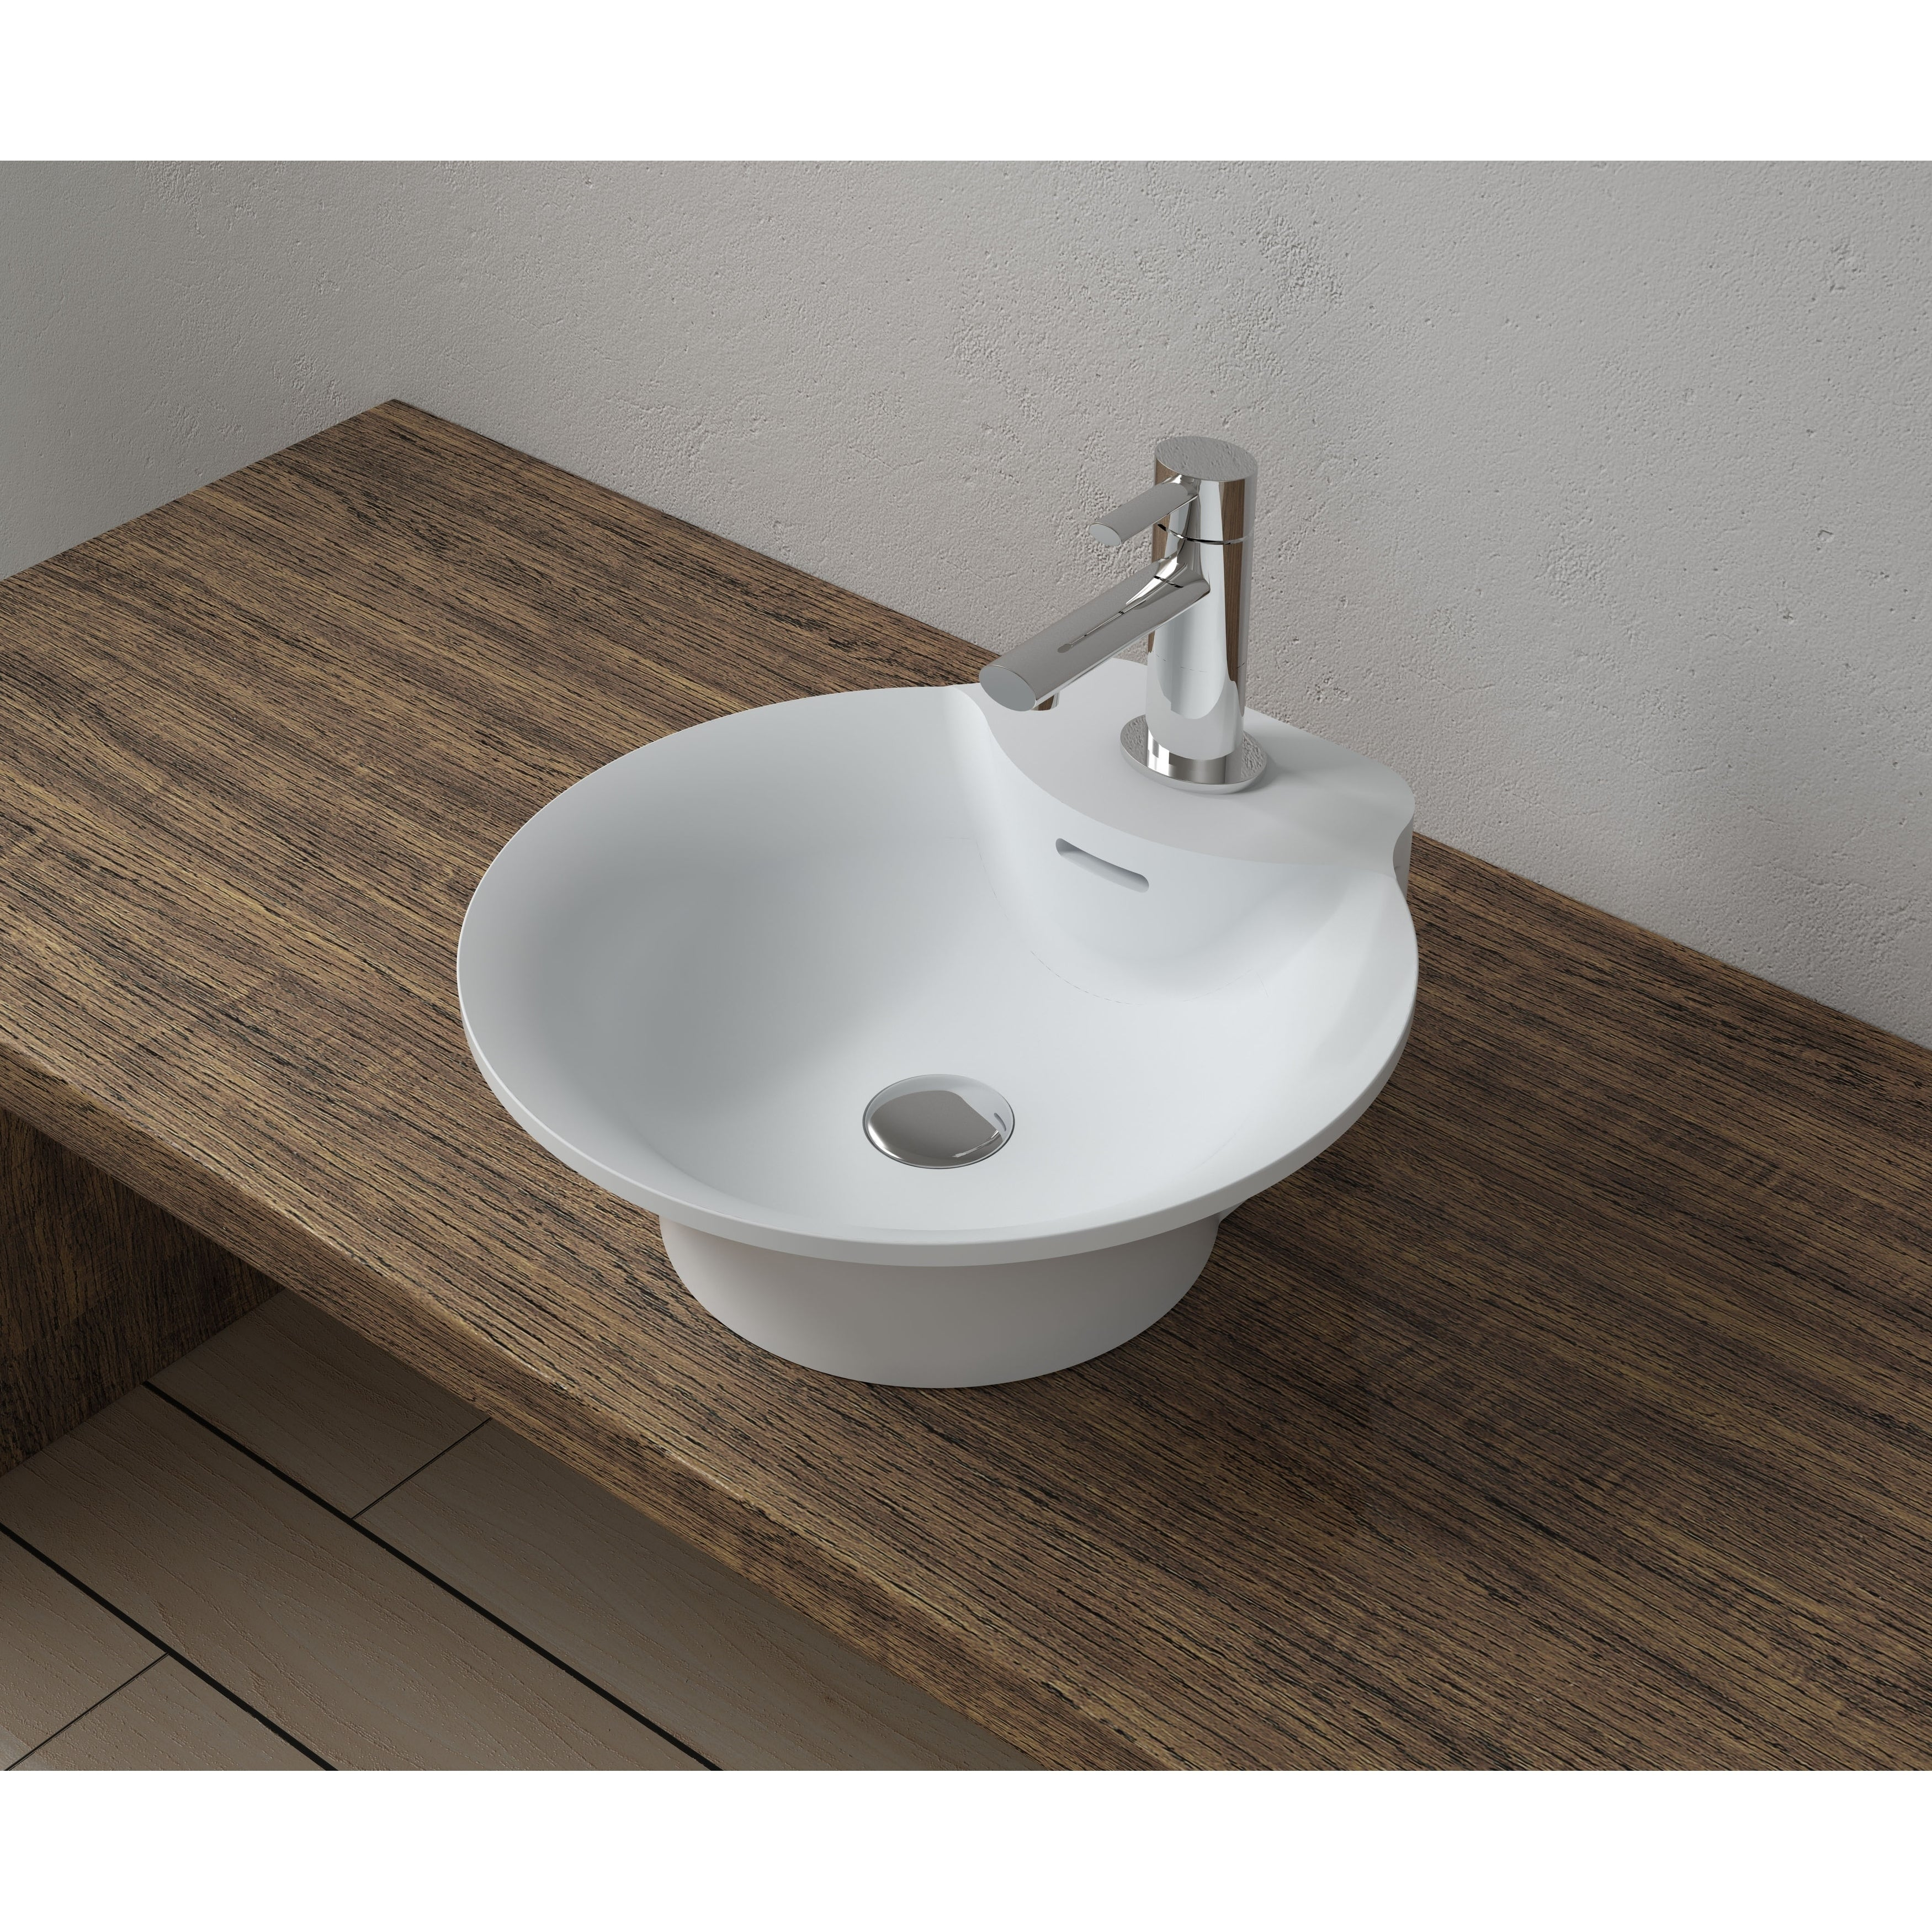 16x17 Polystone Round Vessel Bathroom Sink with Overflow in Glossy or Matte Finish-No Faucet (ws-vs-vp14-glossywhite)